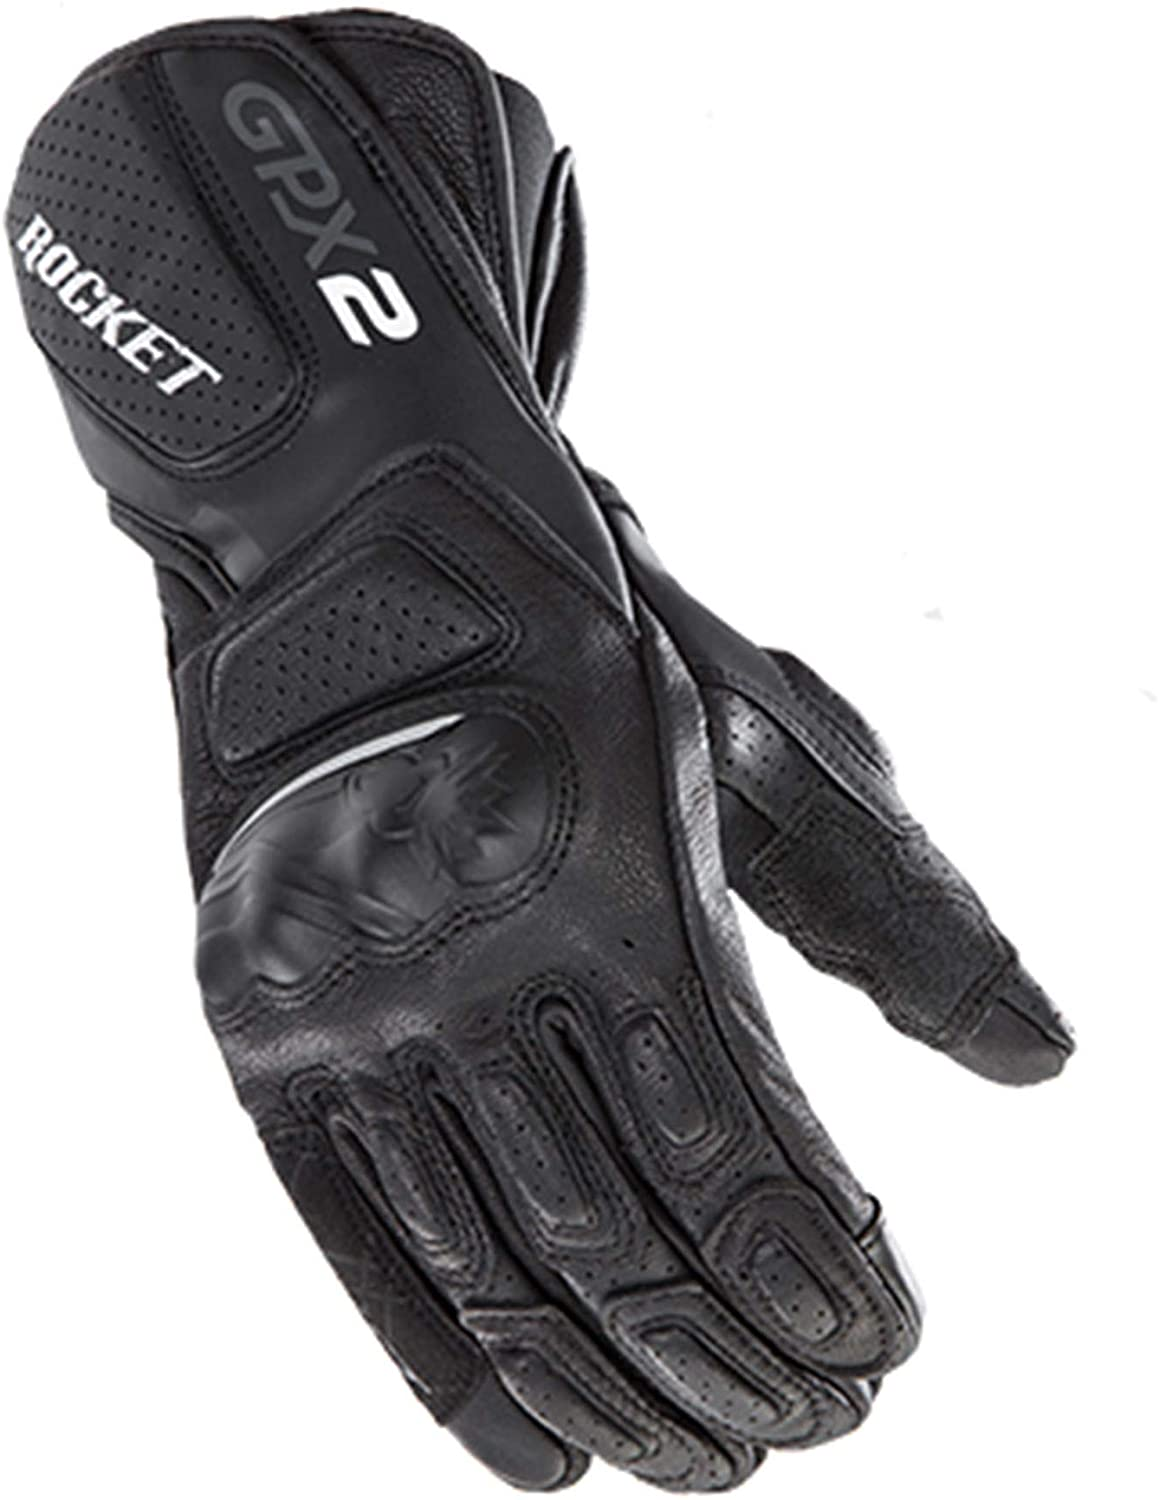 Joe Rocket GPX 2.0 Men's Street Motorcycle Gloves - Black/Black / 3X-Large